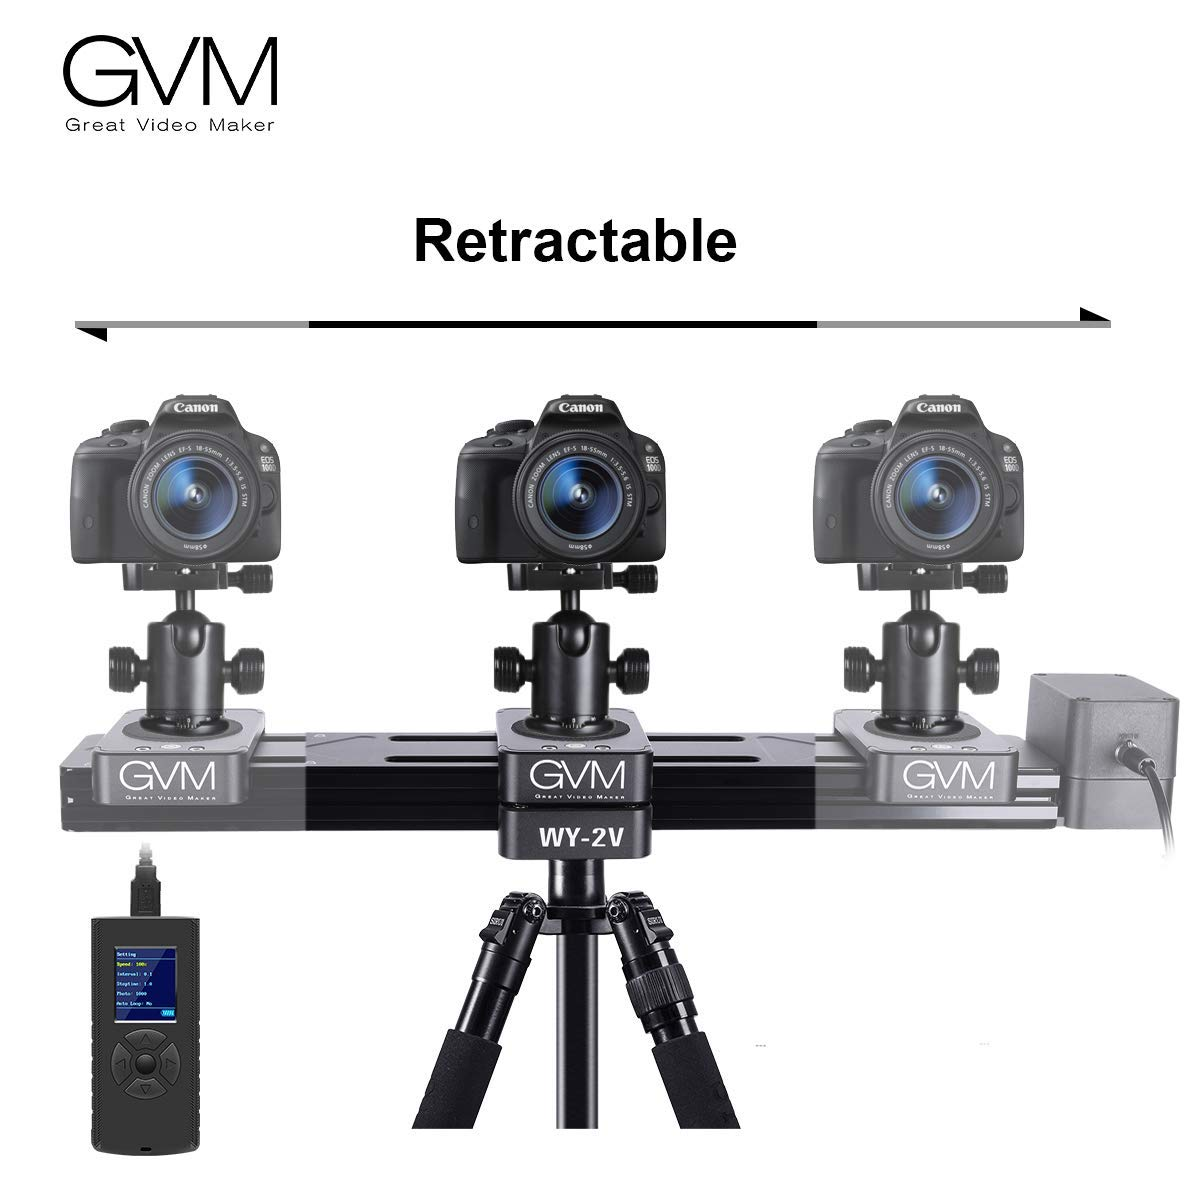 GVM Motorized Camera Slider Mini Size Track Rail Provides 6.5 inch can be Retract and Extend to 13 inch Length, idea for Outdoor Video Shooting, Travelers, Photographers, filmmakers by GVM Great Video Maker